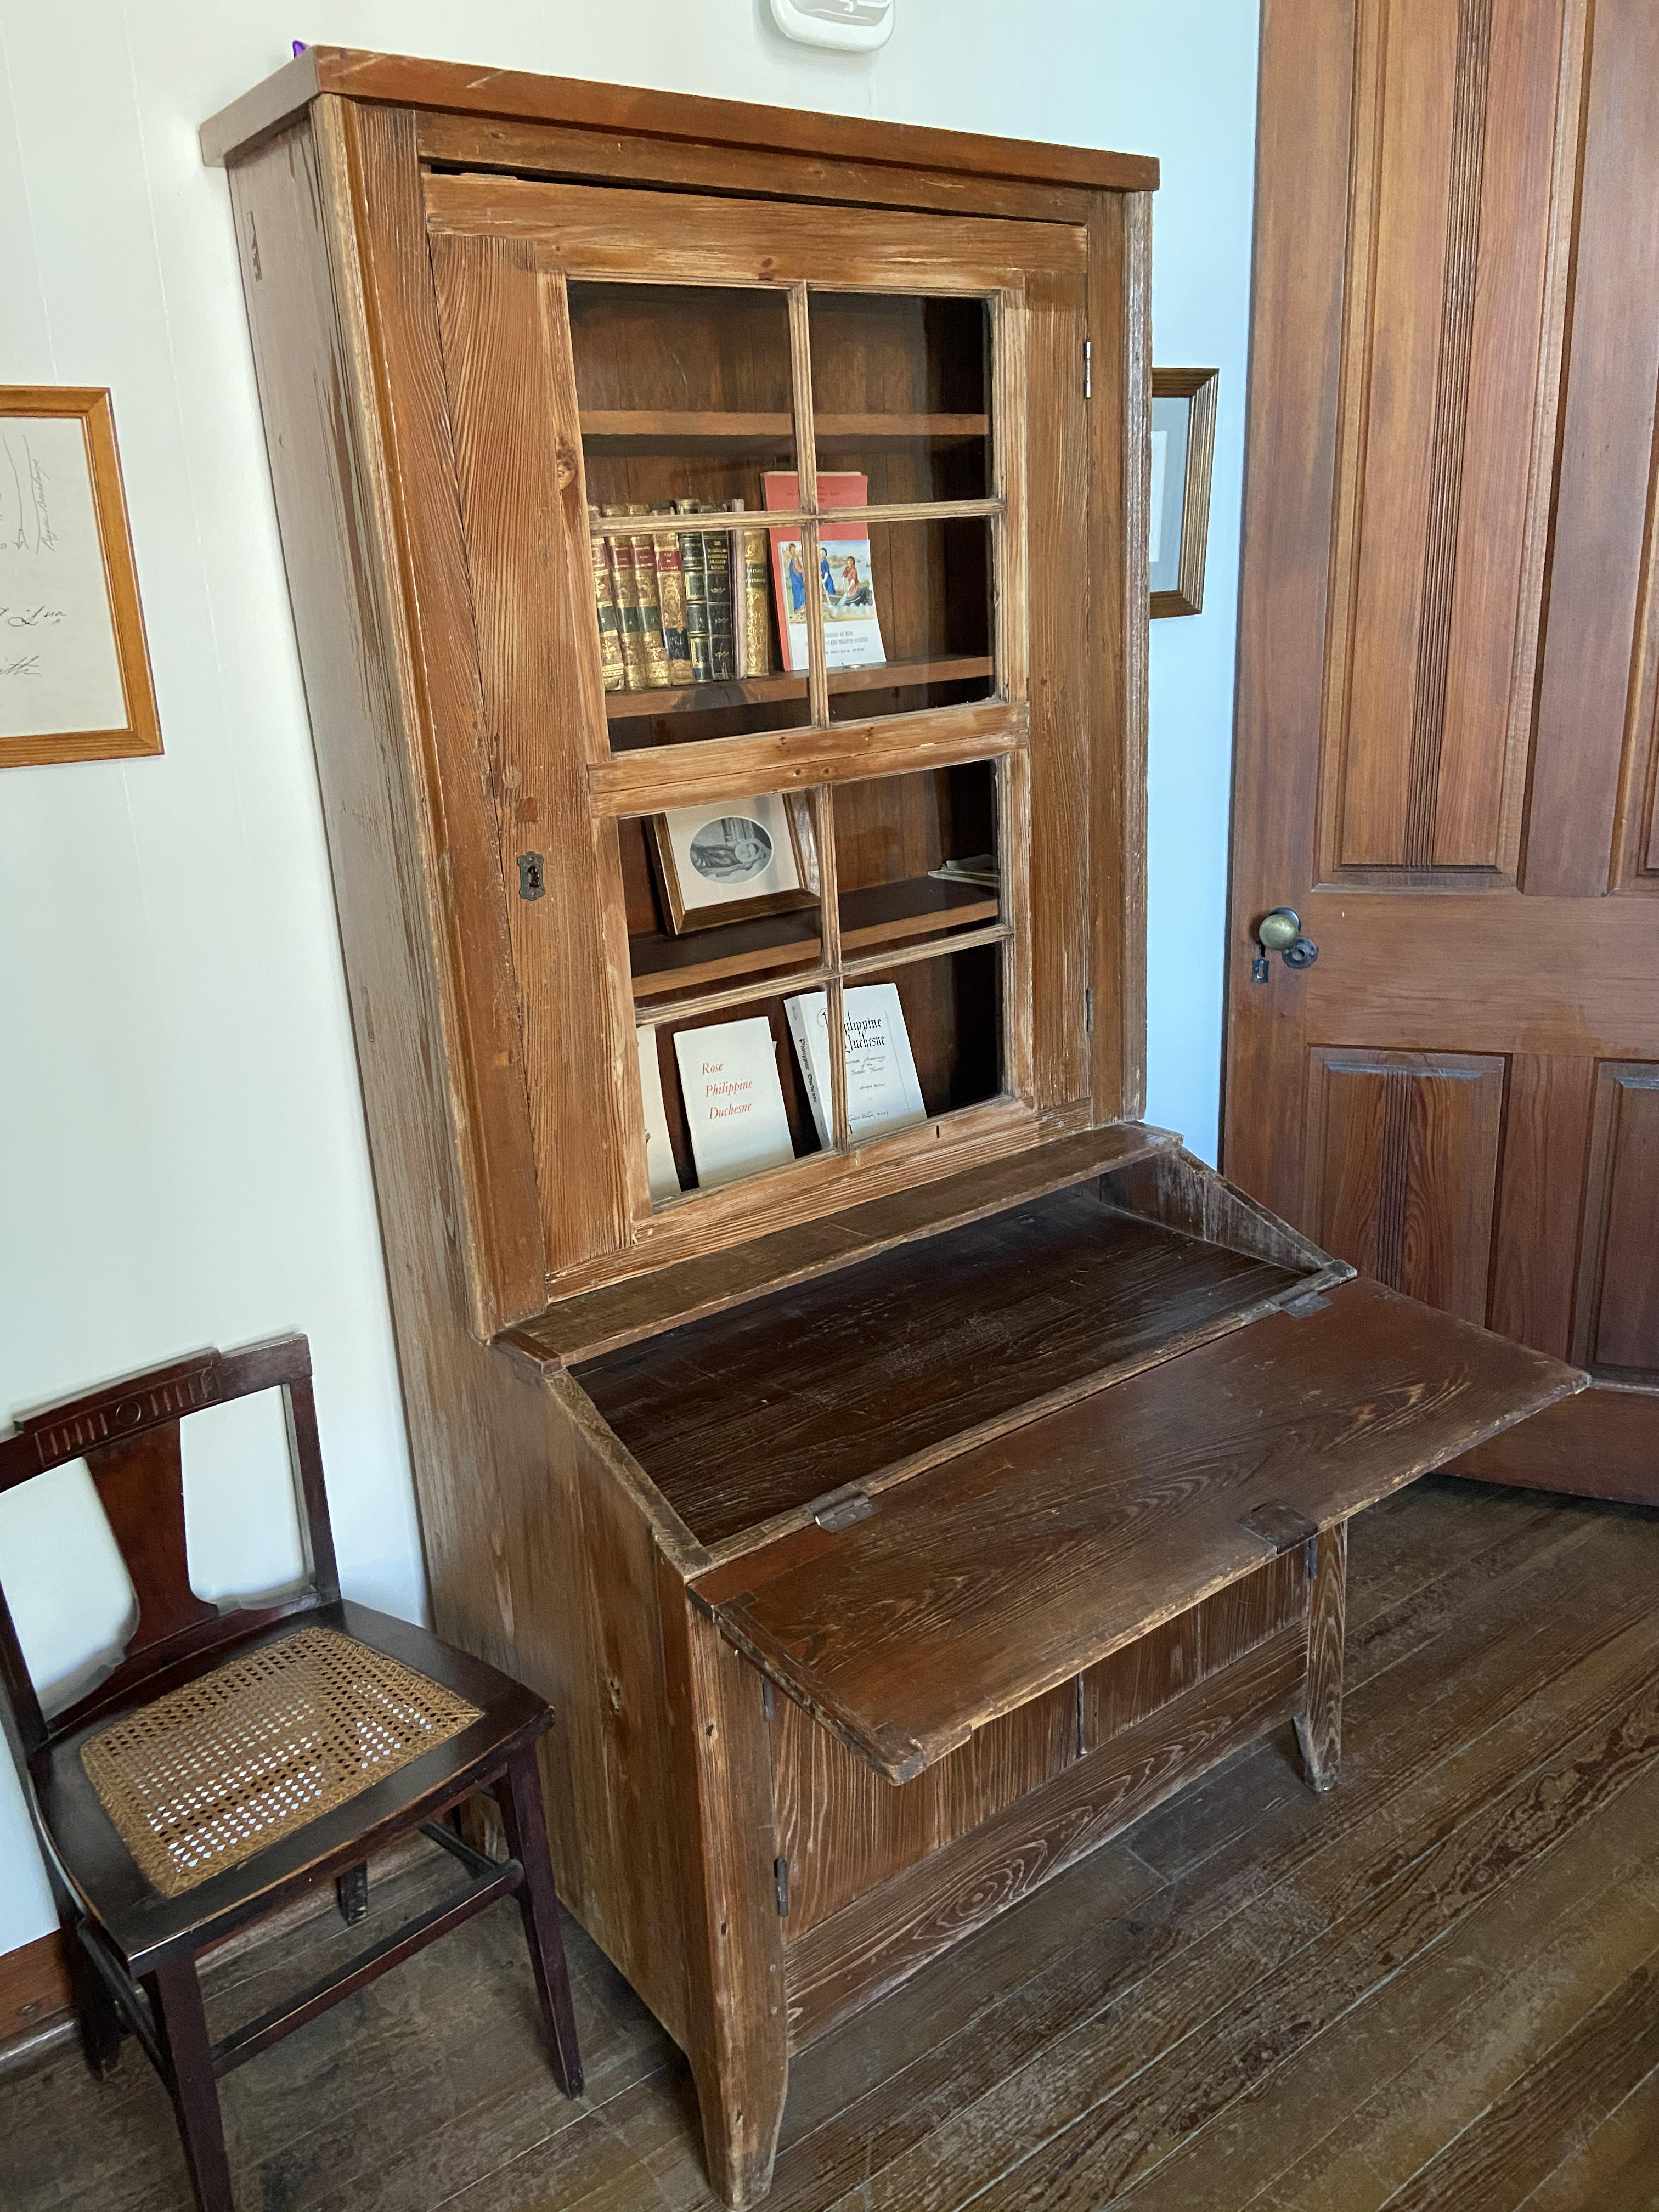 This desk was constructed for use by St. Philippine Duchesne who traveled from Missouri in 1822 to check on the progress of the mission and to see for herself the conditions under which the Sisters were laboring.  It was used by various superiors in the years following her visit.